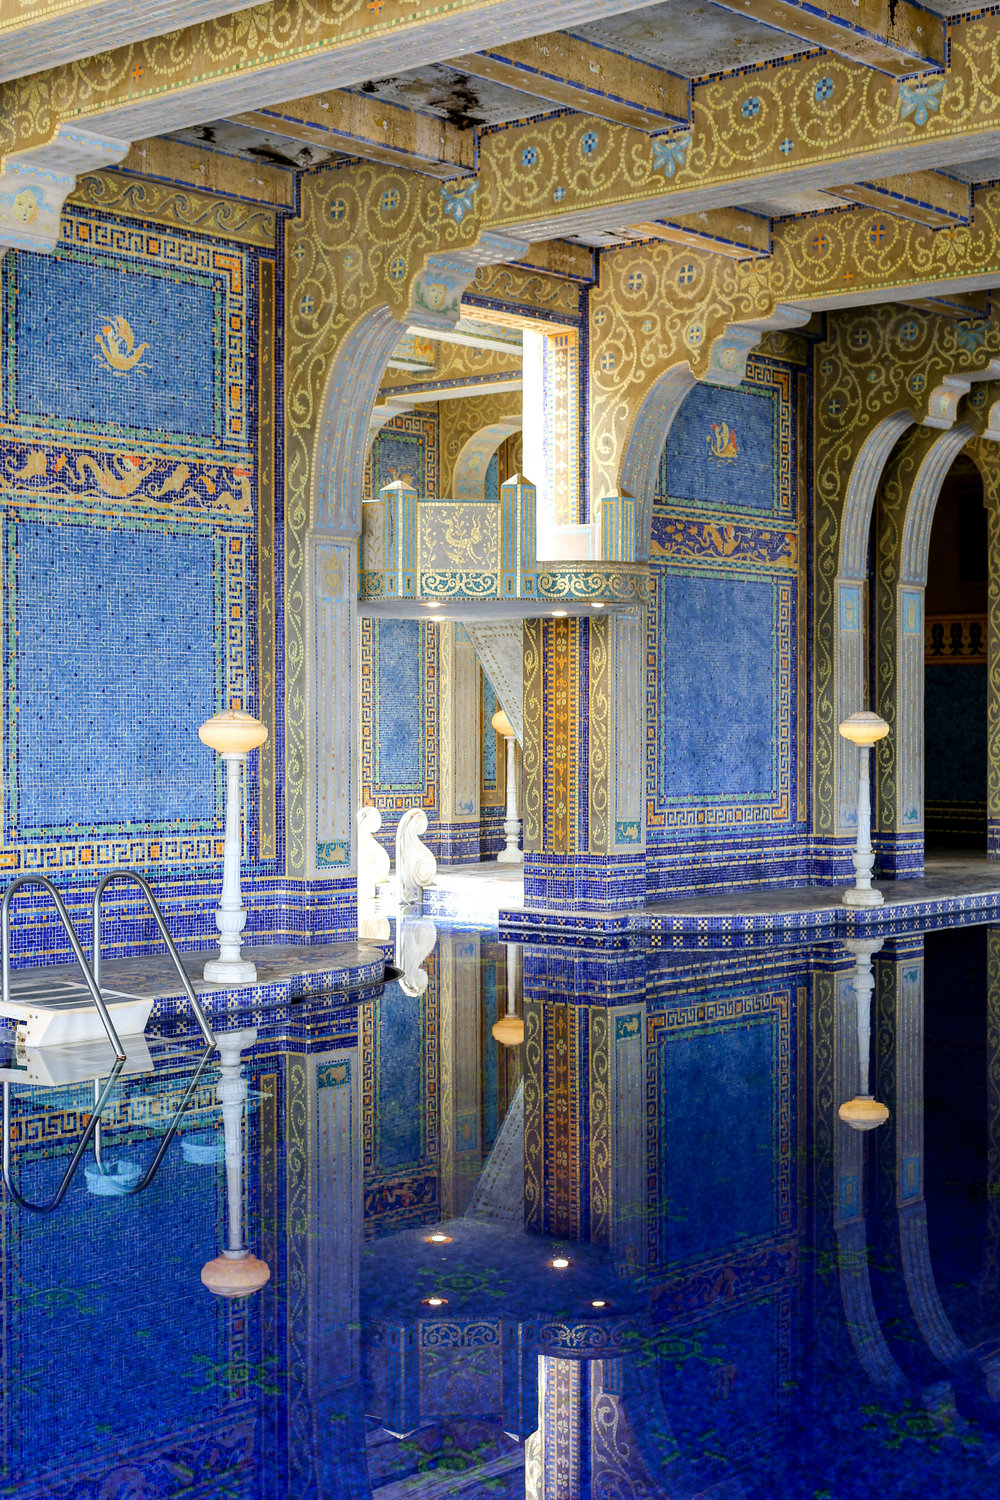 The Pool House at Hearst Castle.